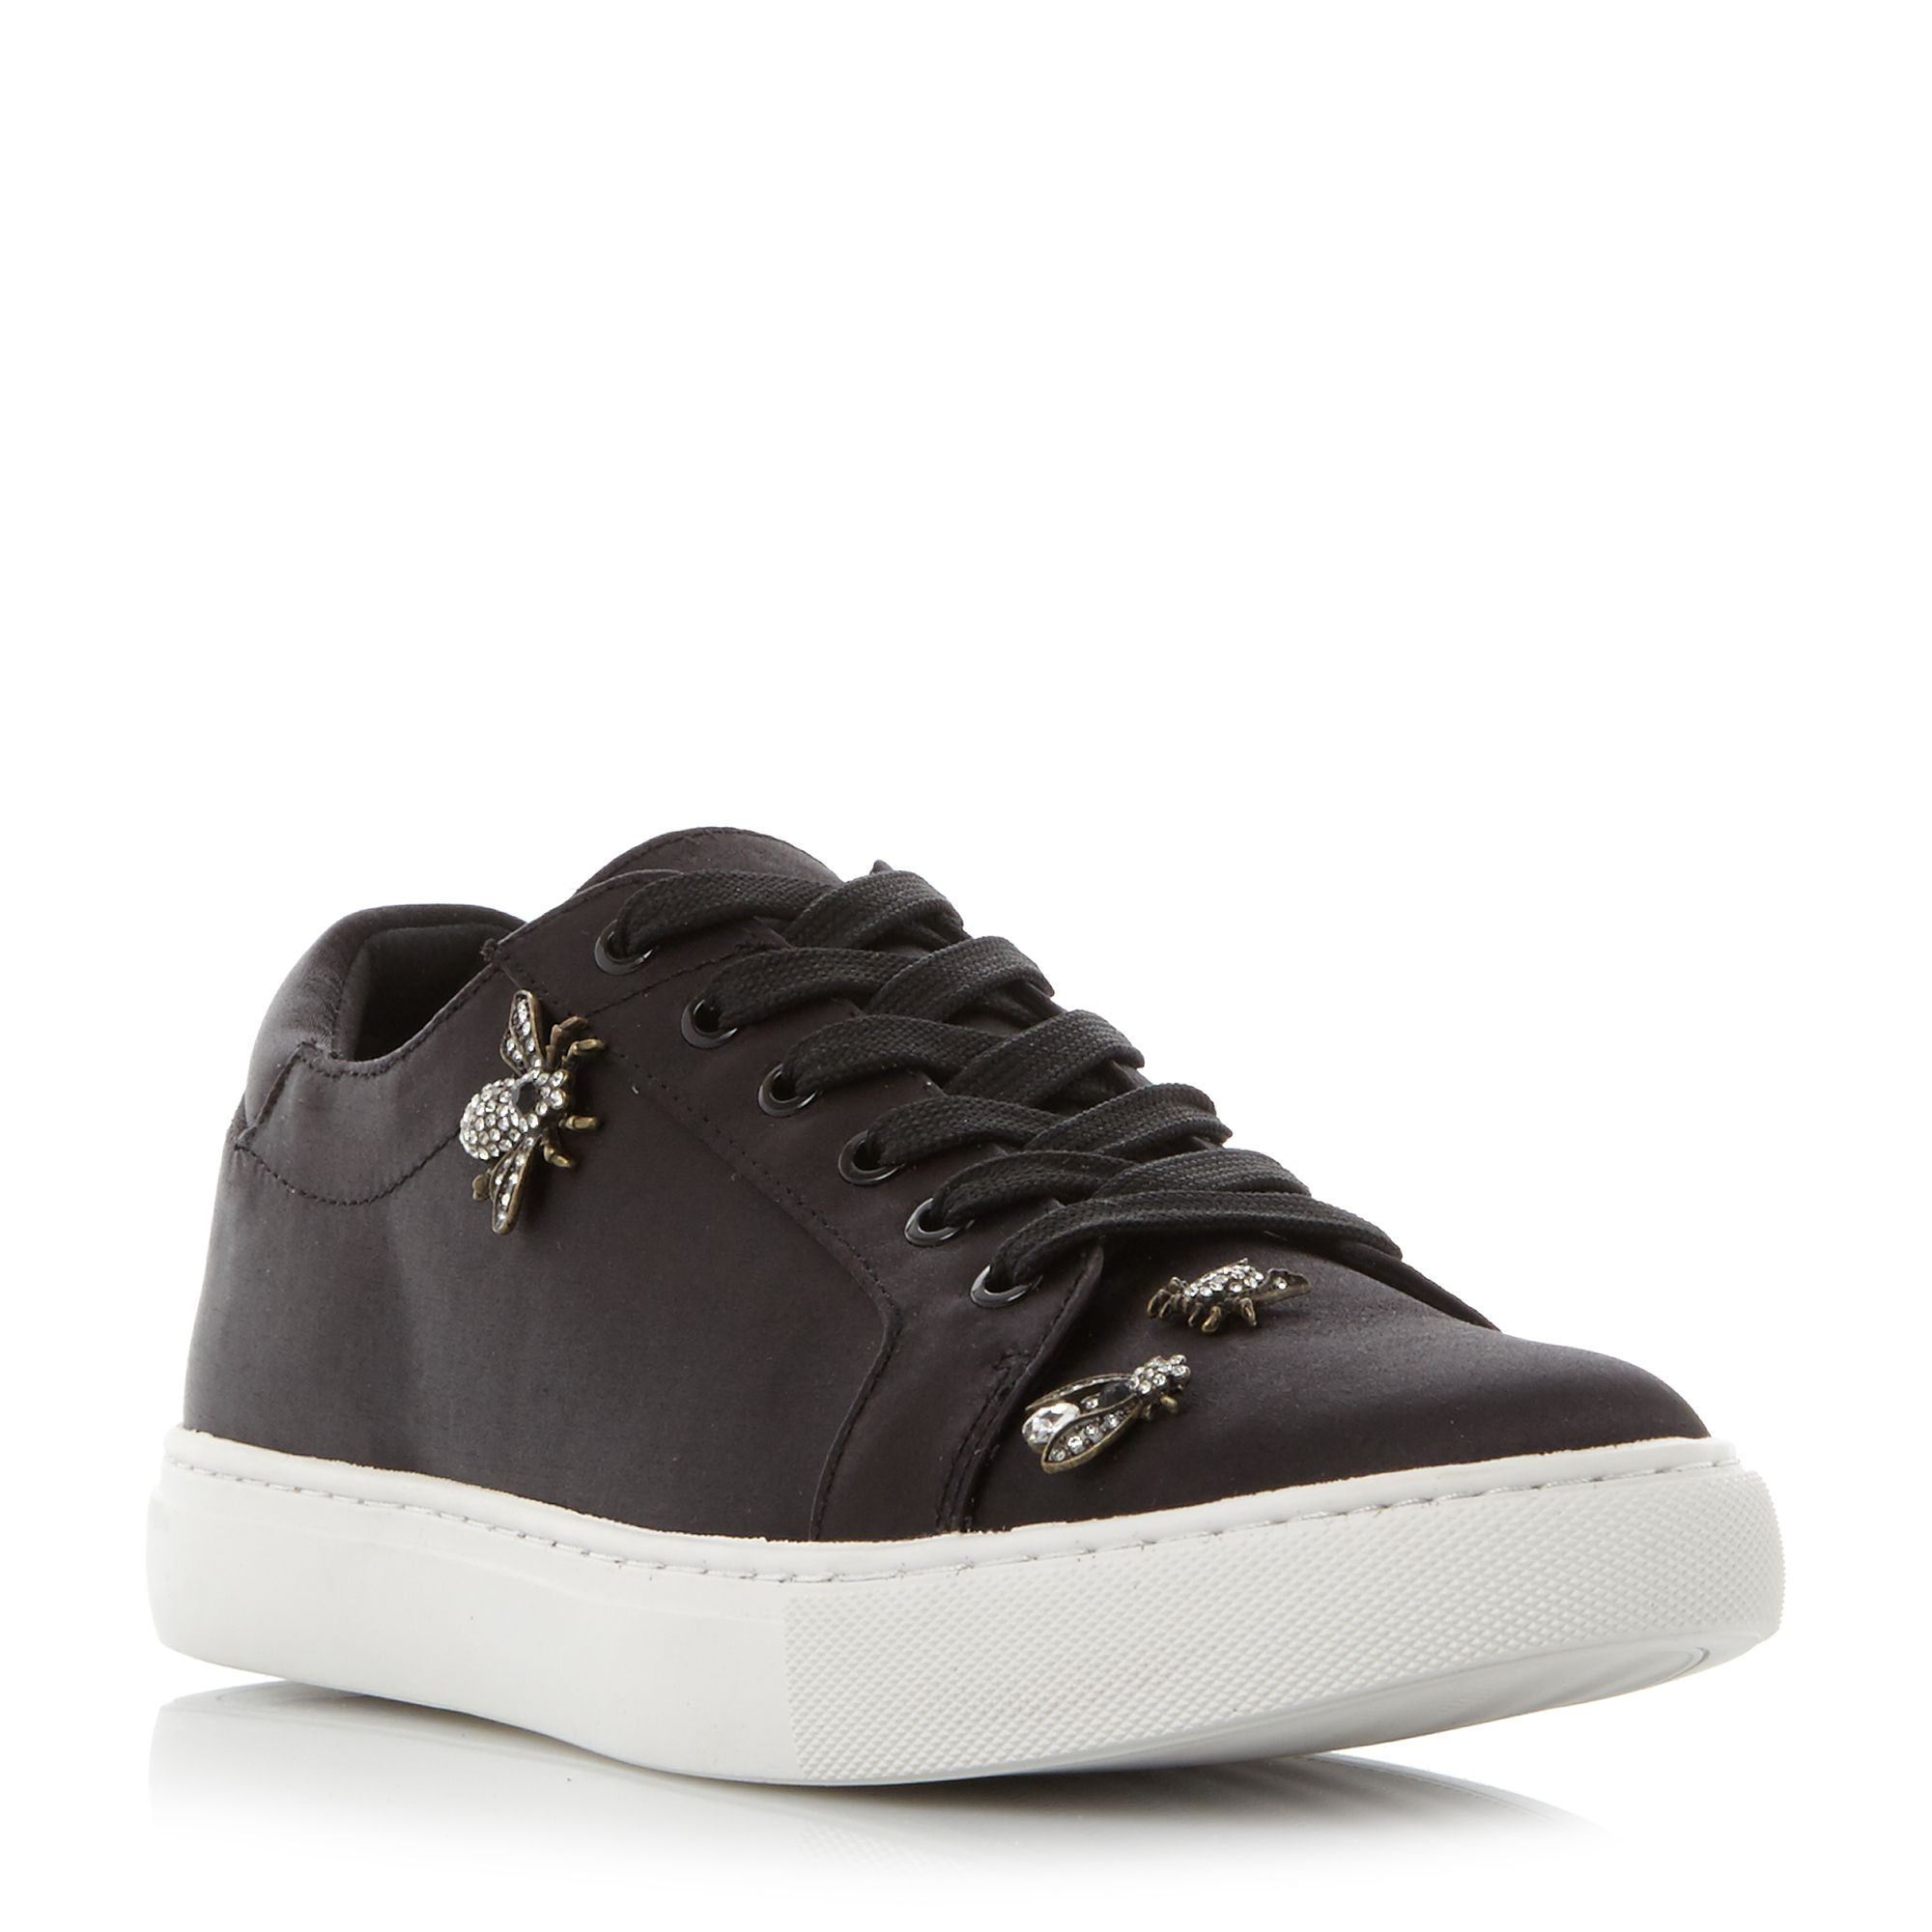 Kenneth Cole Kam 8 Embellished Satin Trainers, Black